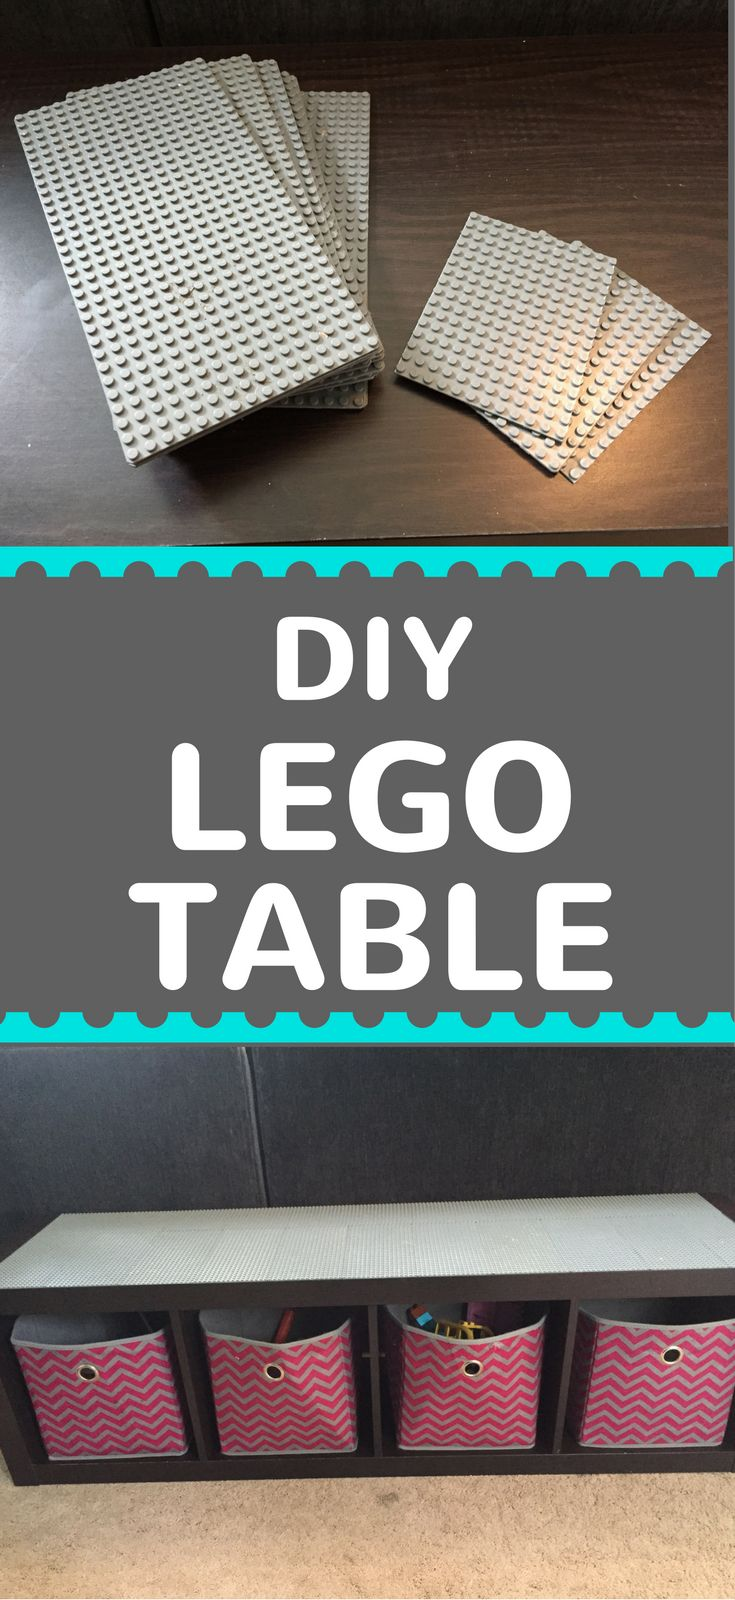 Learn how to build a simple DIY LEGO Table in under 1 hour!